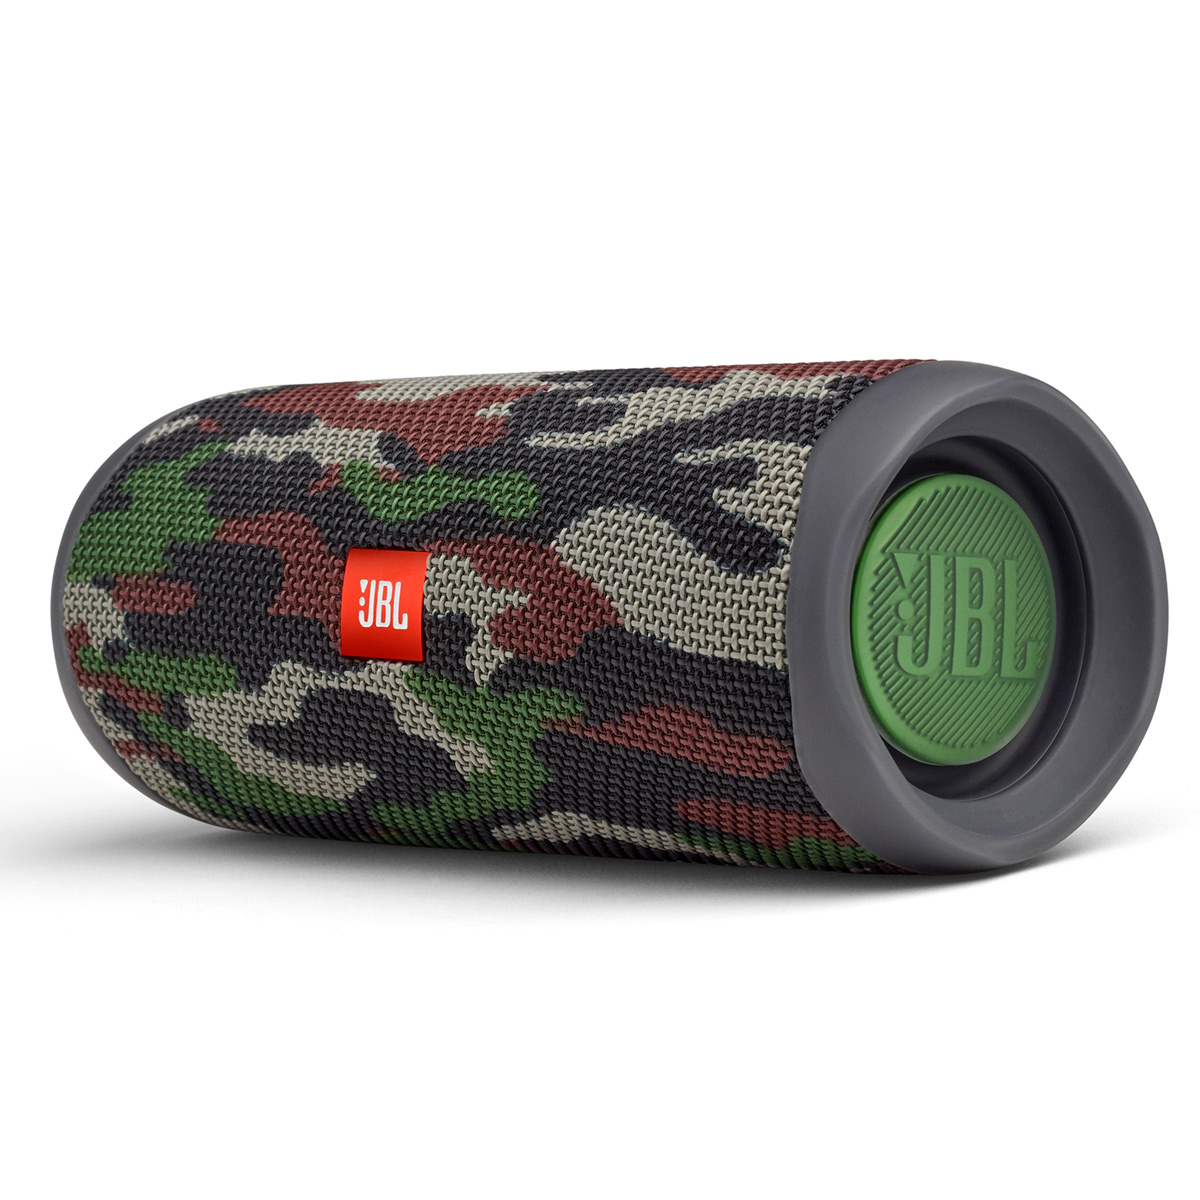 JBL-Flip-5-Portable-Waterproof-Bluetooth-Speaker thumbnail 14